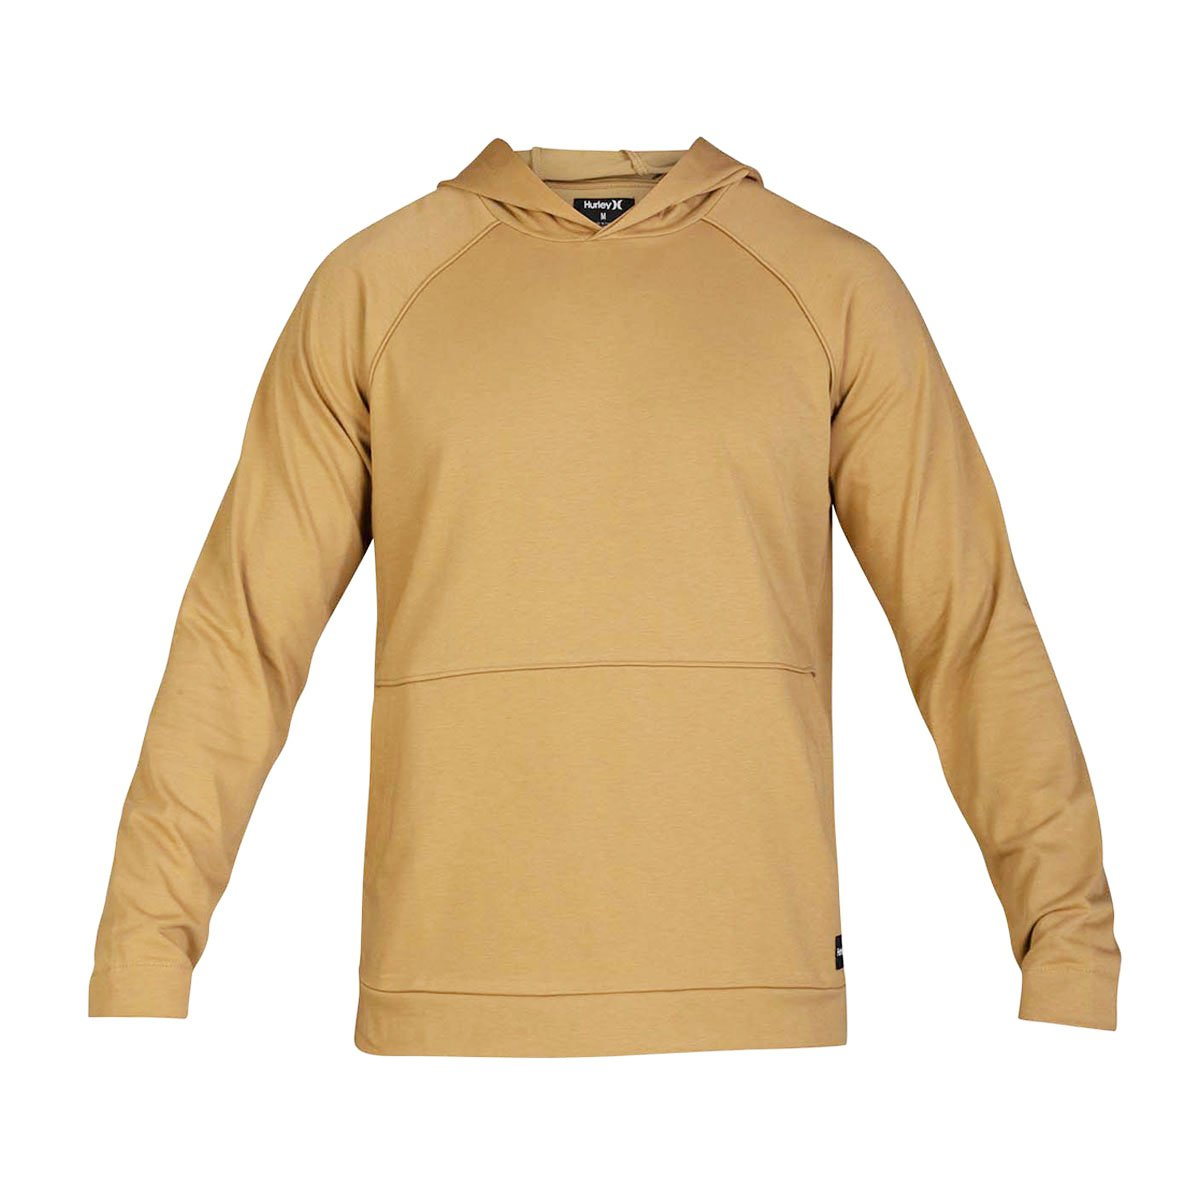 DRI-FIT MONGOOSE L/S HOOD